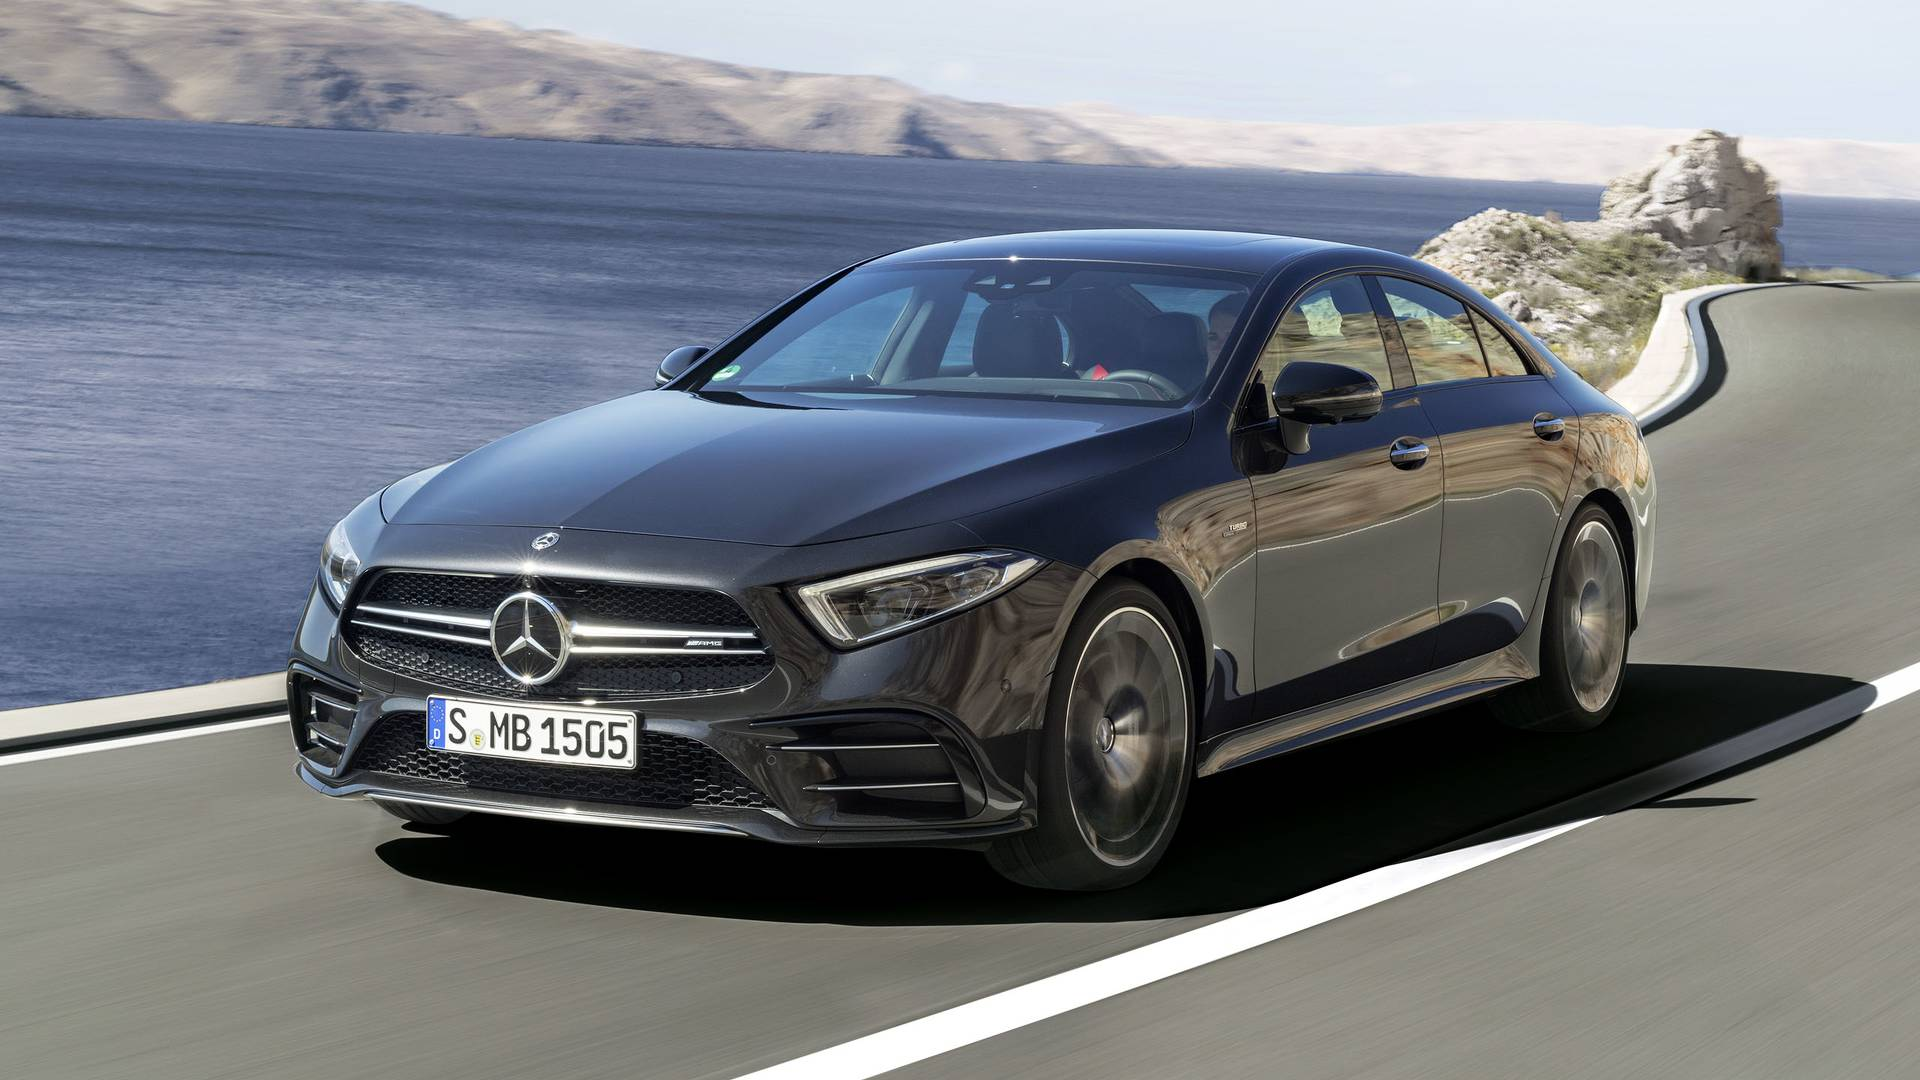 https://icdn-2.motor1.com/images/mgl/8yNnB/s1/2019-mercedes-amg-cls53.jpg